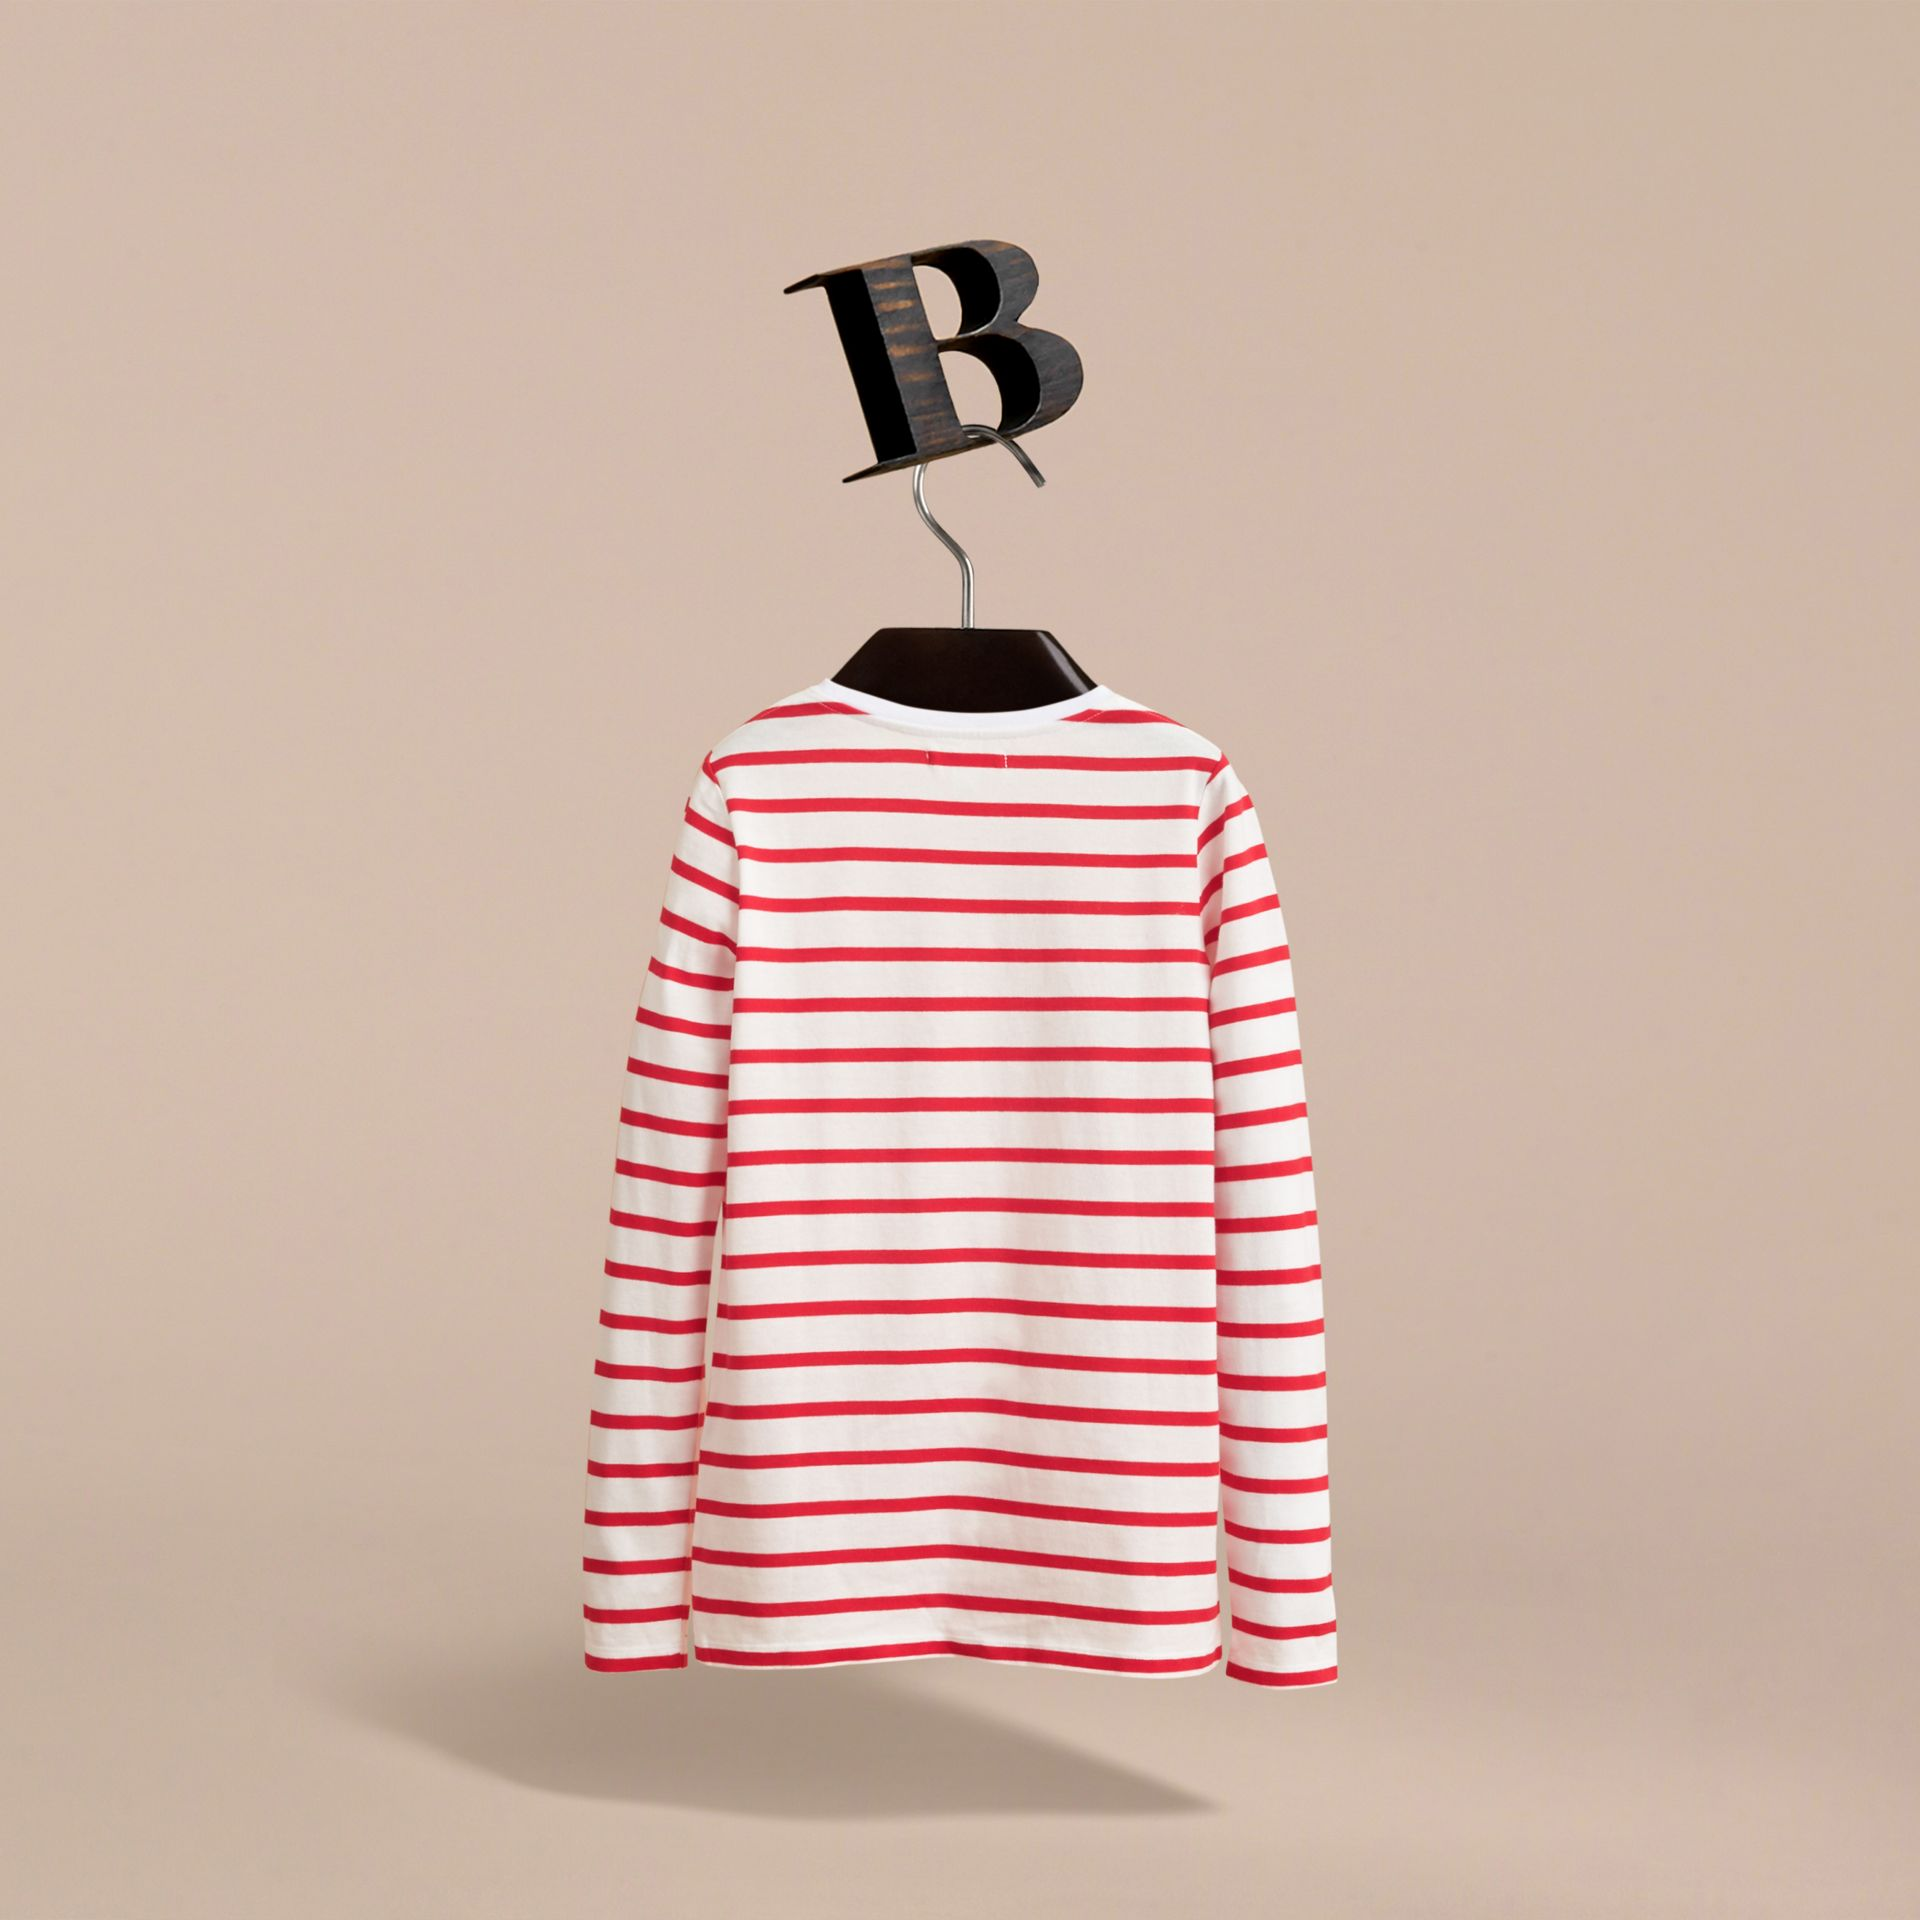 Unisex Pallas Helmet Motif Breton Stripe Cotton Top in Parade Red | Burberry Hong Kong - gallery image 4